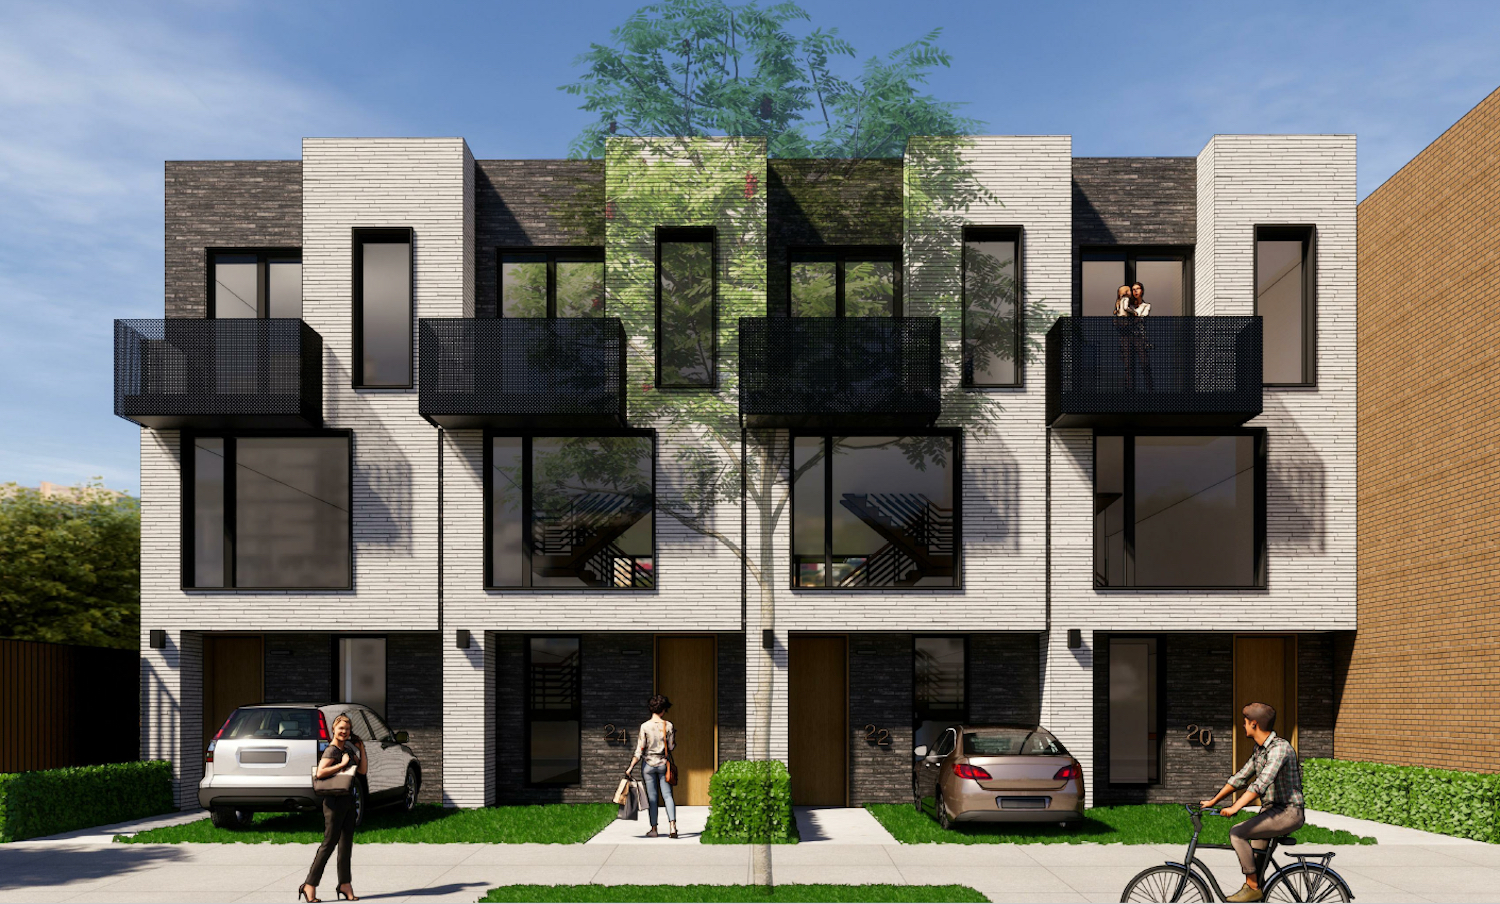 Rendering of 20 Huntington Street